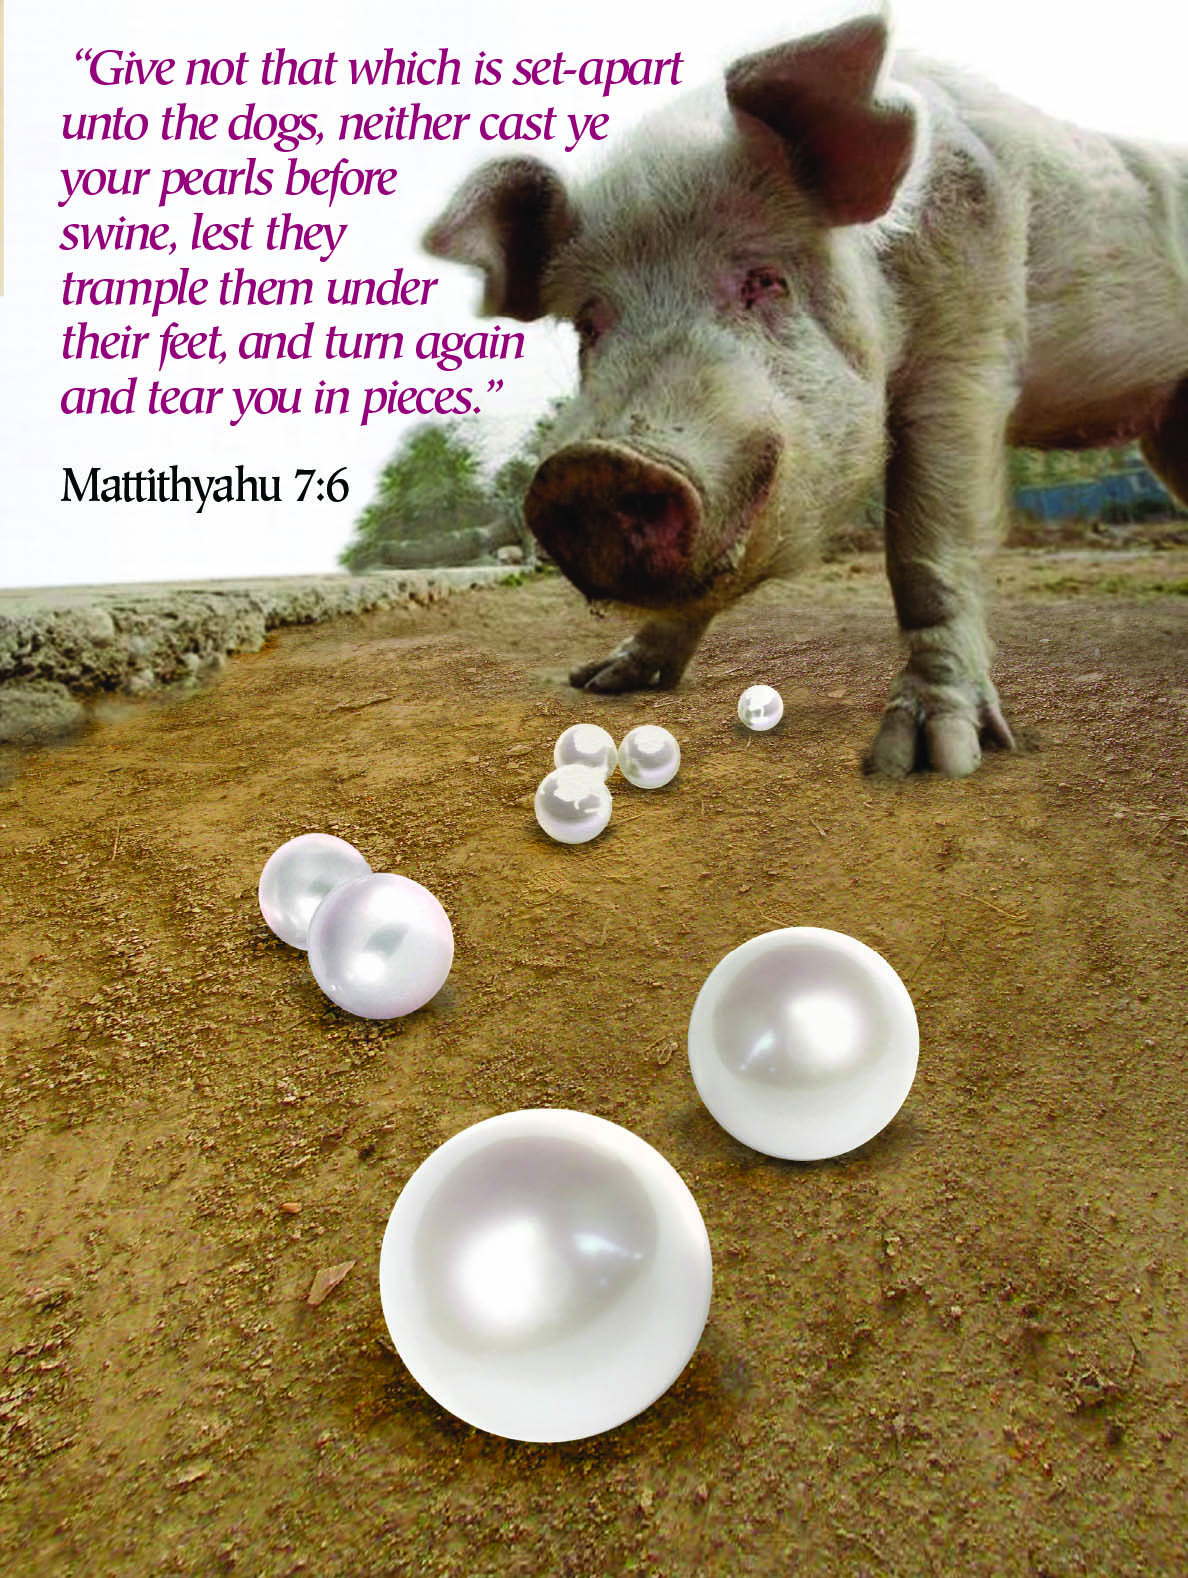 """...Neither cast ye your pearls before swine..."""